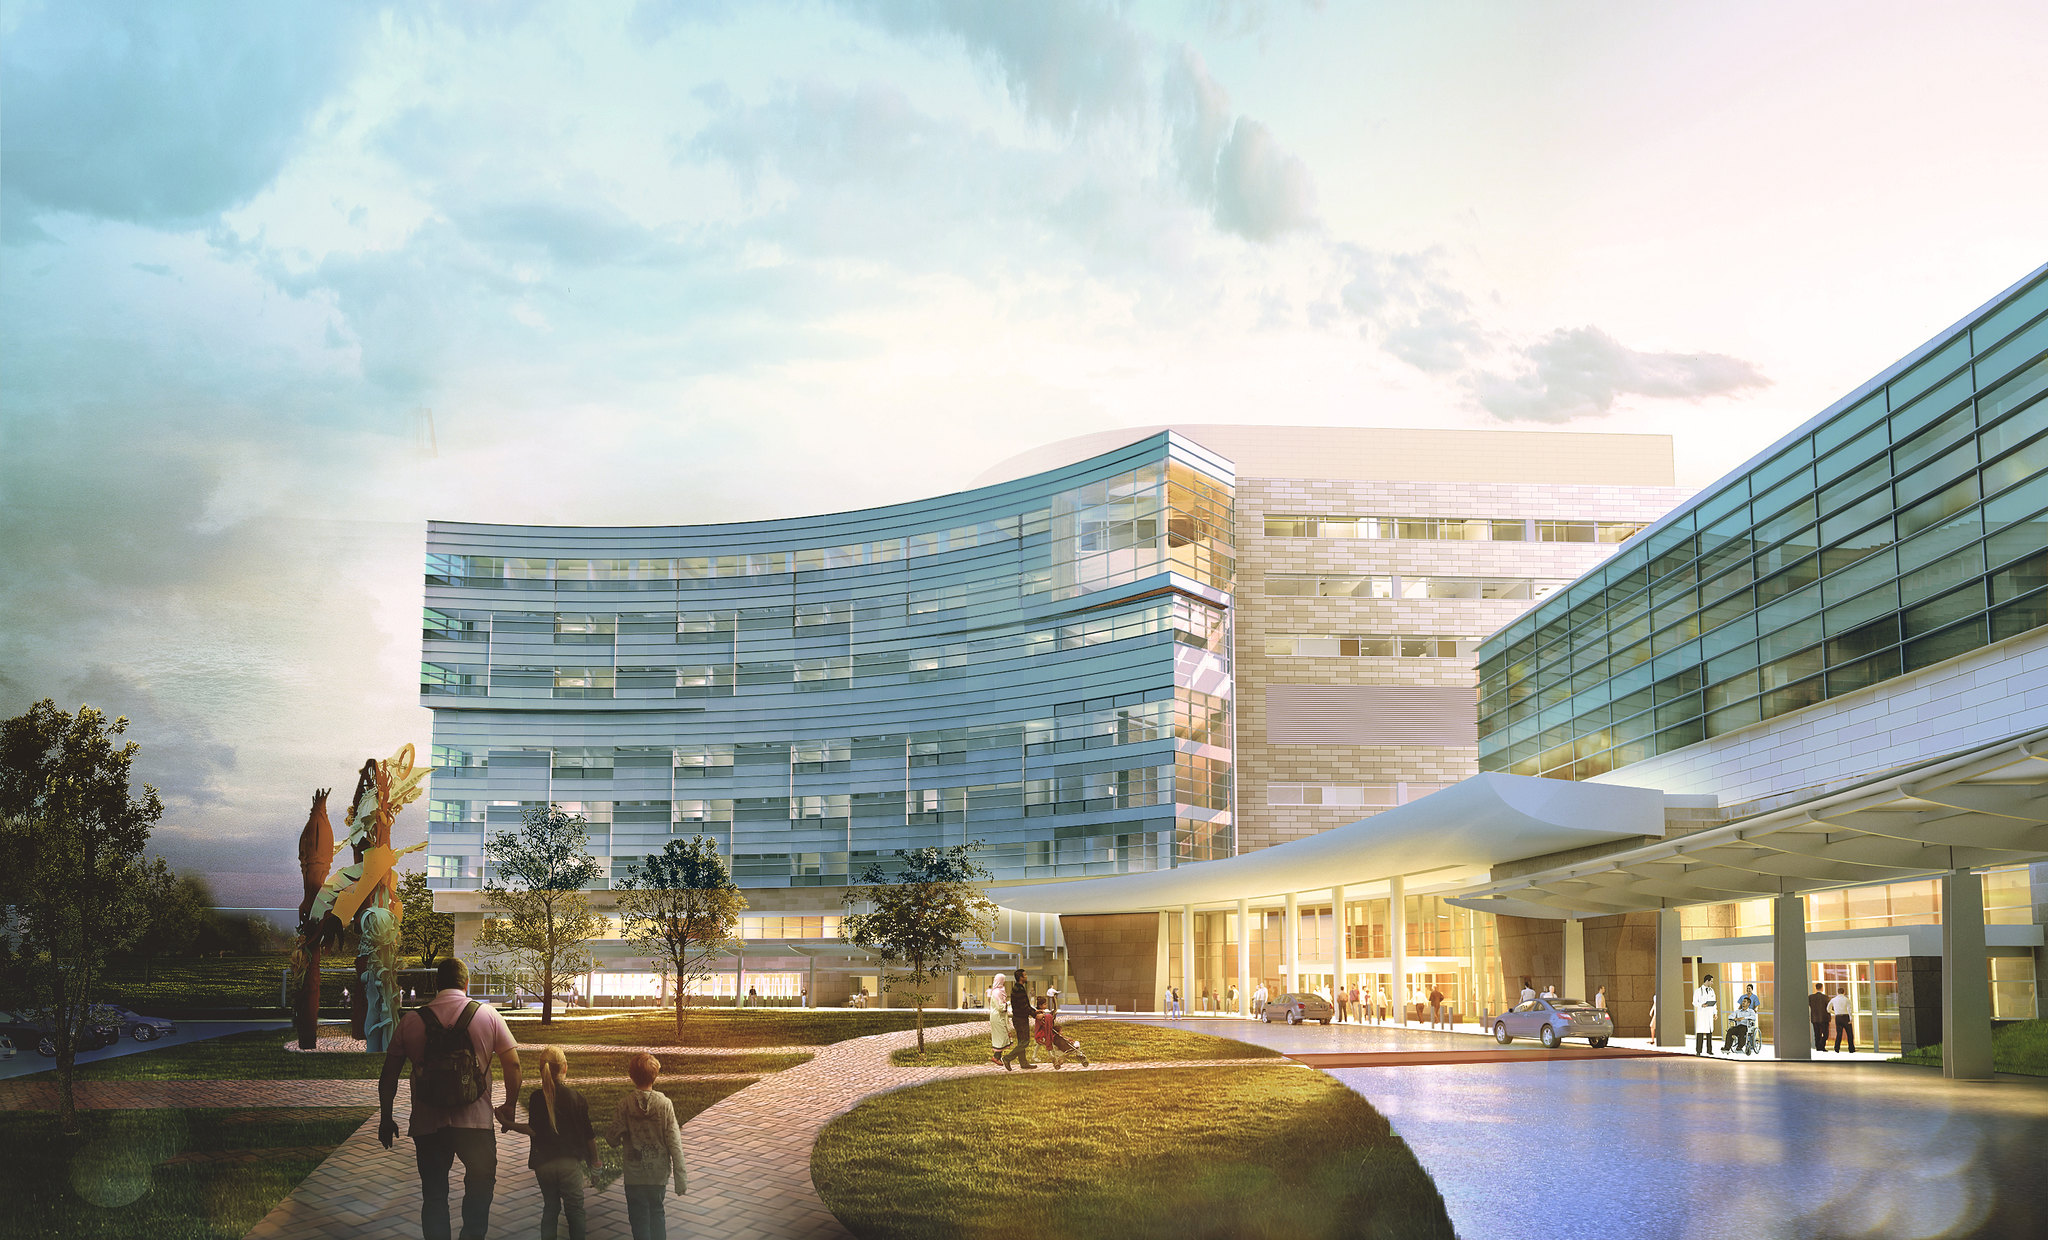 A drawing shows what Penn State Children's Hospital will look like when its expansion is complete – a brick and steel building with crescent shape in front.